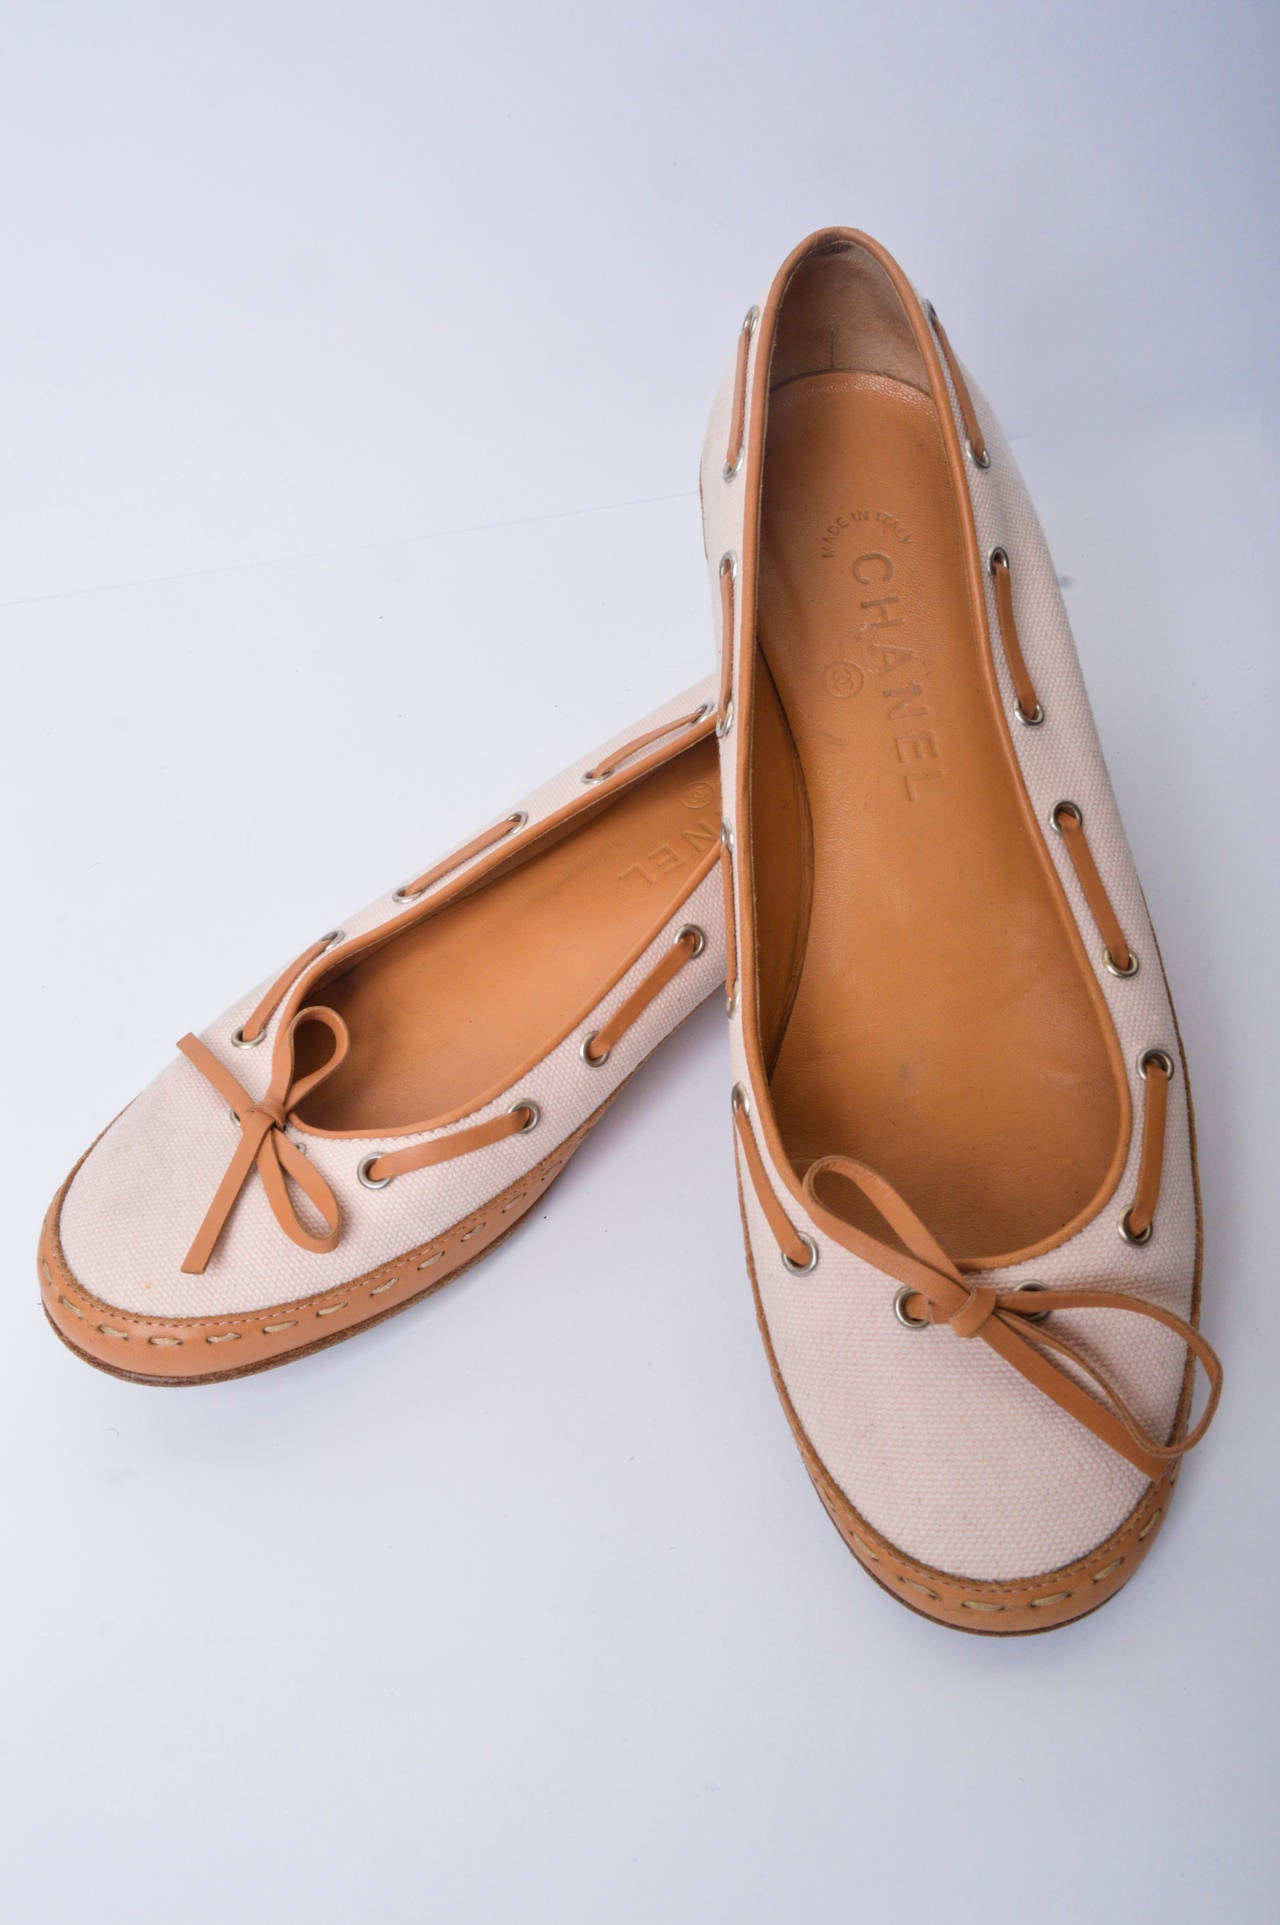 Chanel Pink & Tan Canvas & Leather Ballet Flats Size 37 2